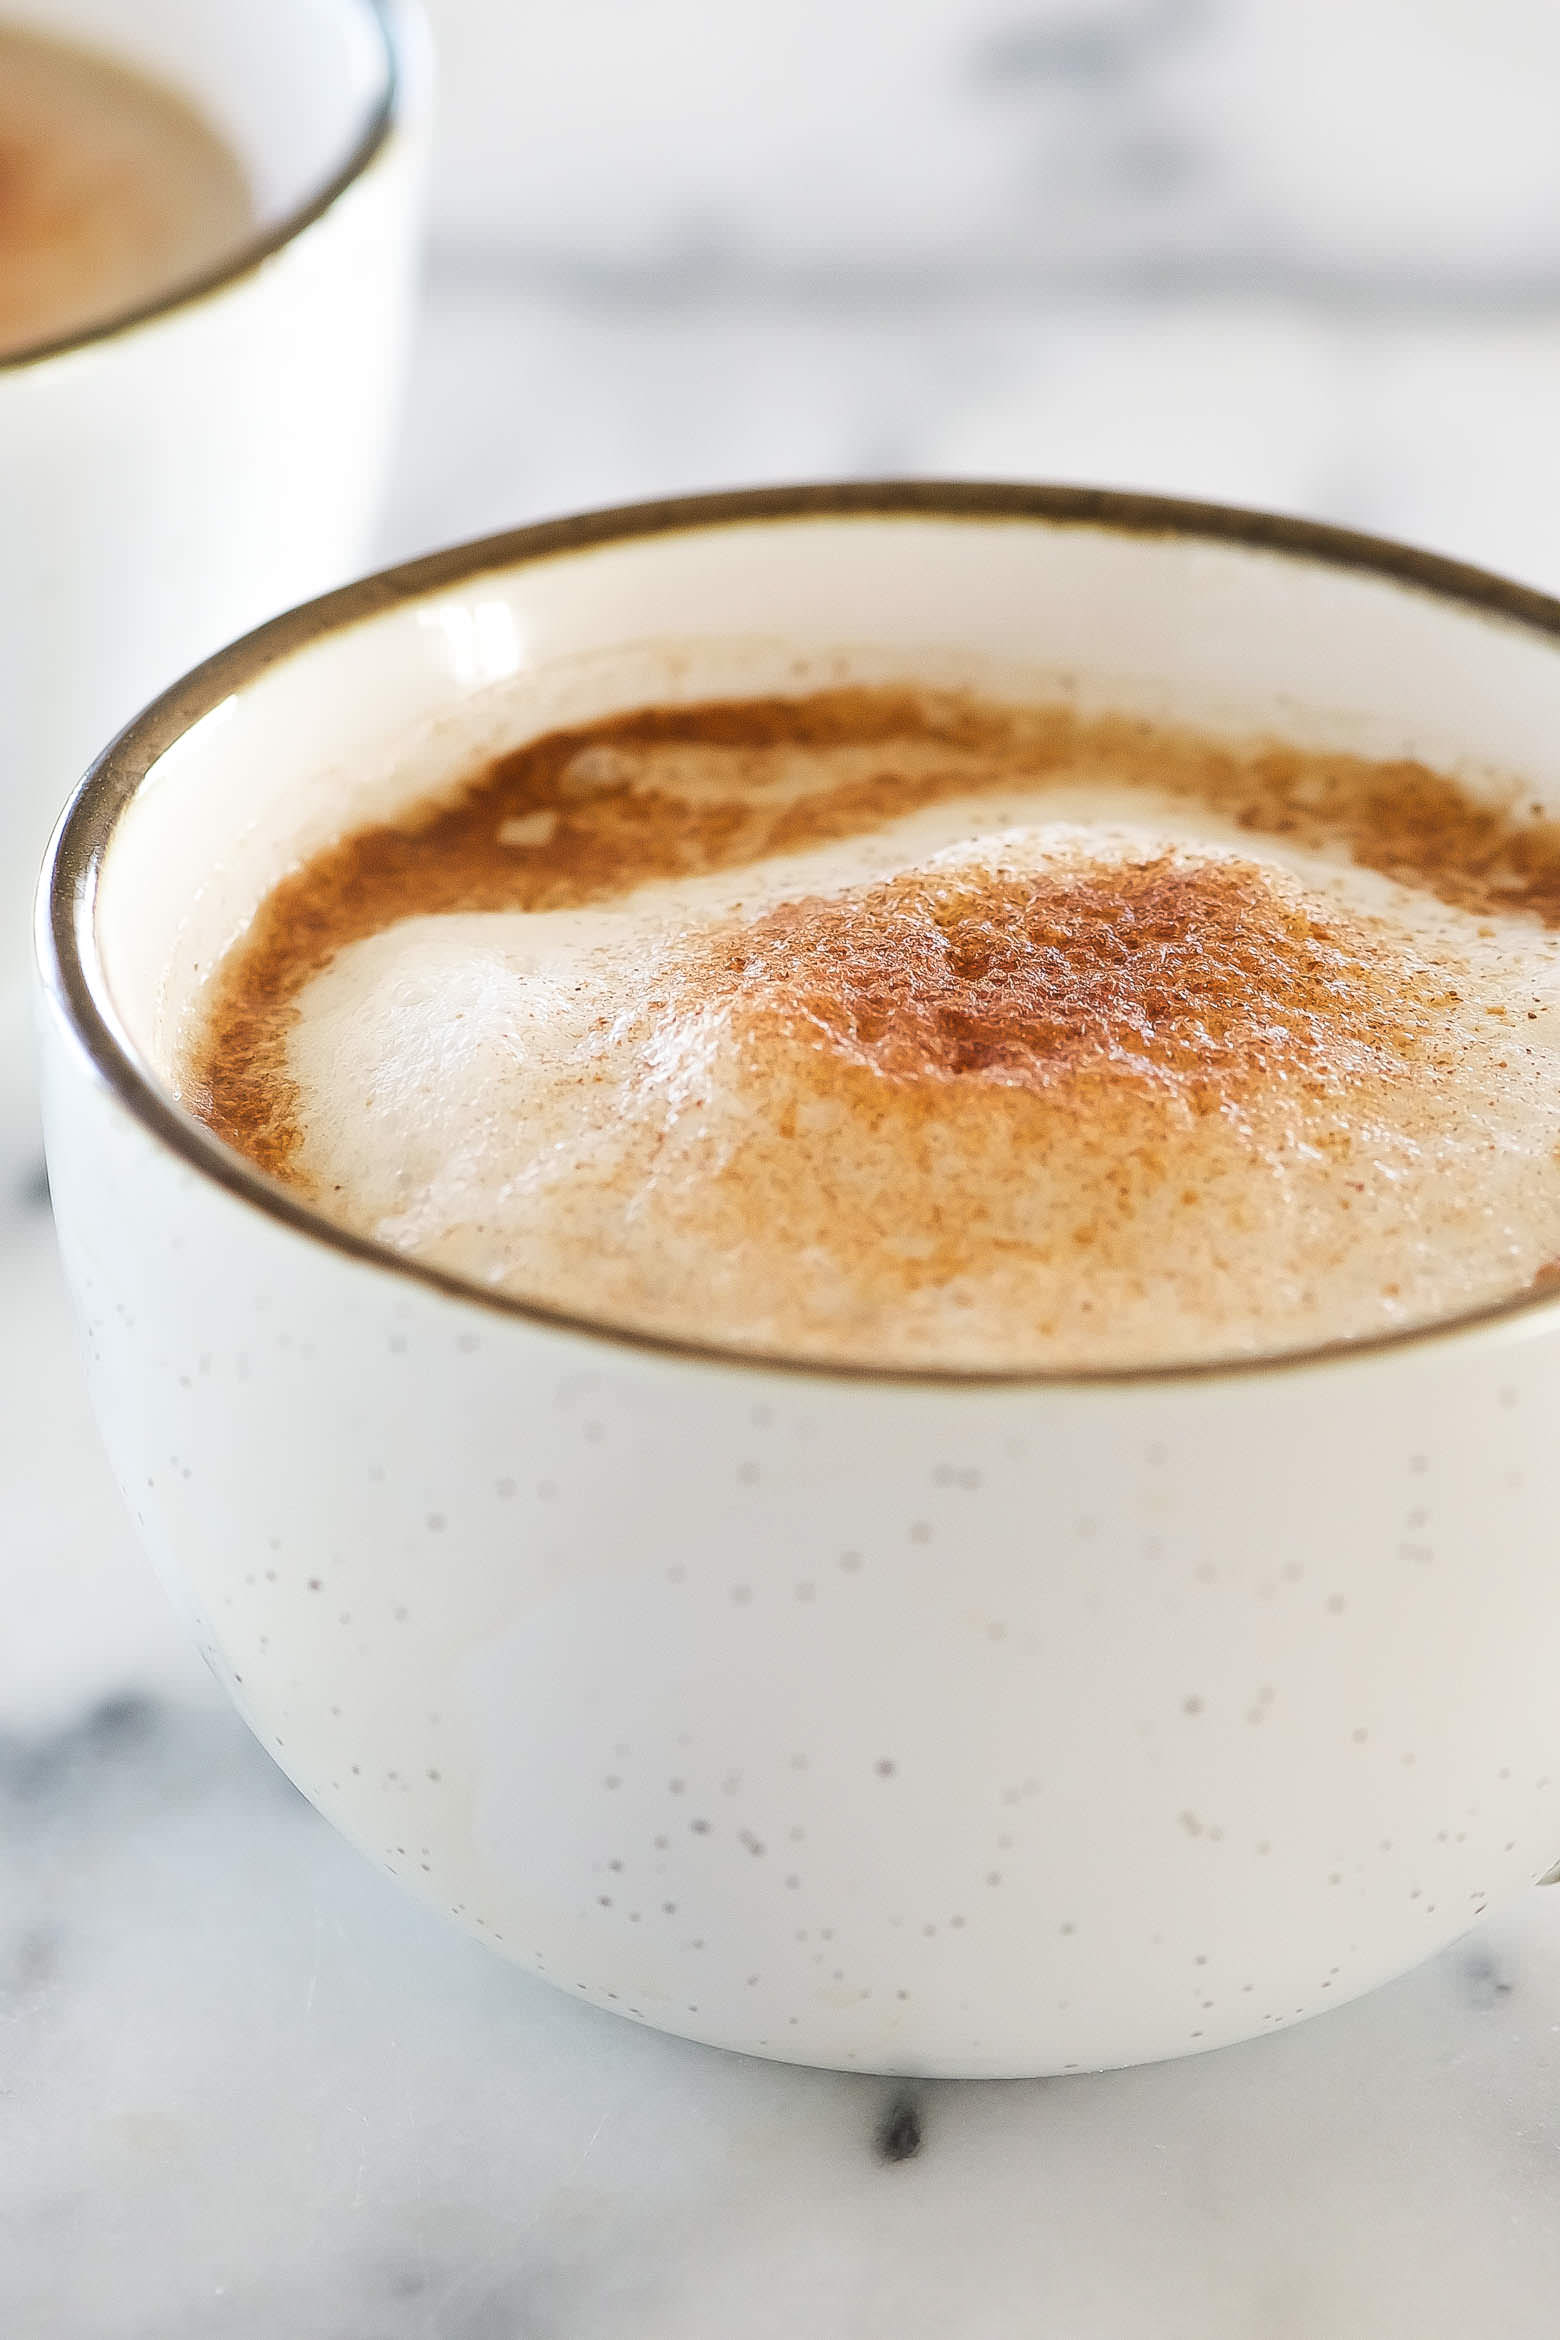 Homemade Cinnamon Dolce Latte Recipe is the best way to sip a coffeehouse favorite from the comfort of your own home! Made lighter with coconut sugar, homemade cinnamon syrup, and milk!